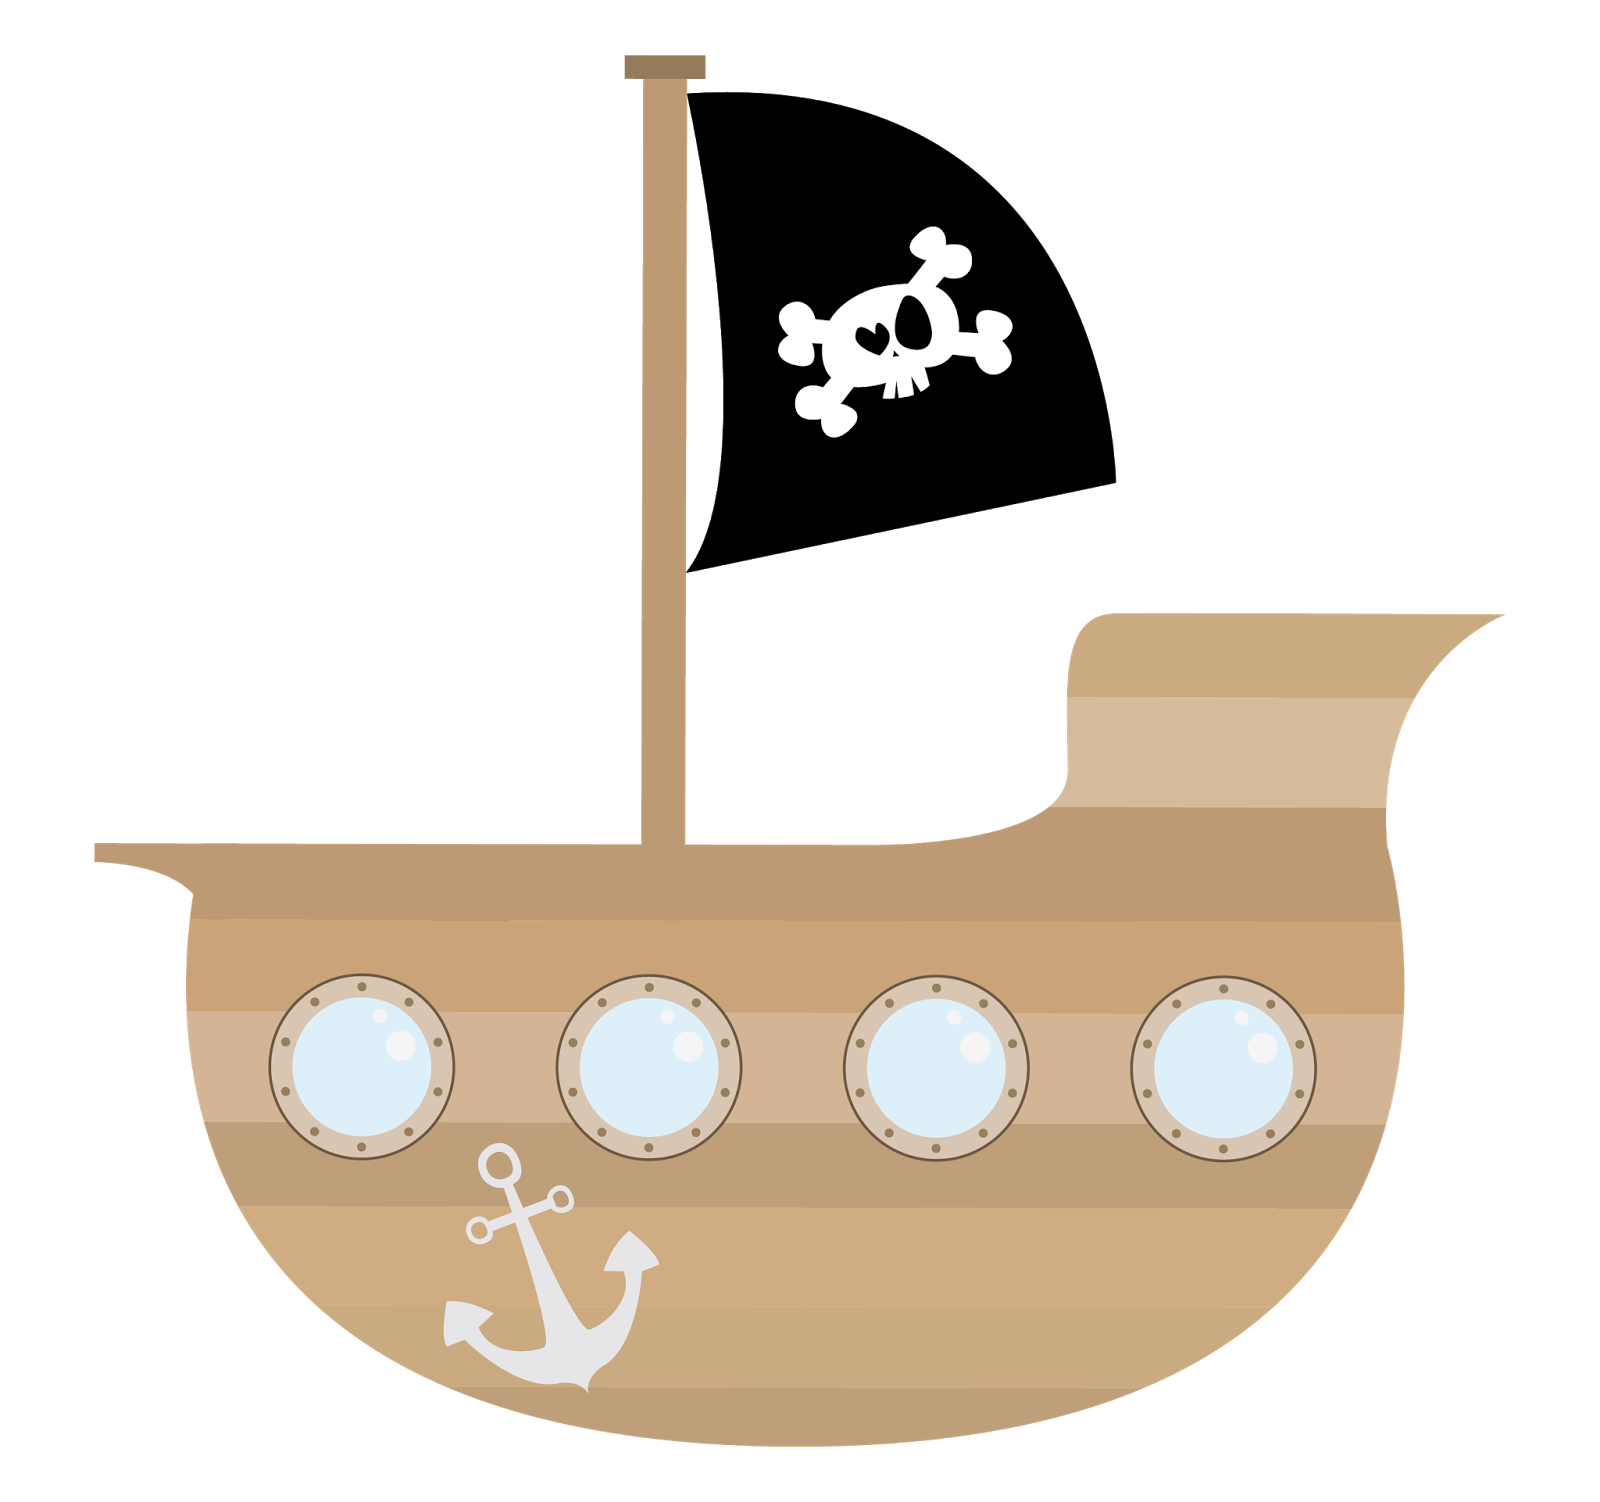 pirate ship clipart clipart kid story pinterest pirate ships rh pinterest co uk pirate ship clipart free pirate ship clipart images